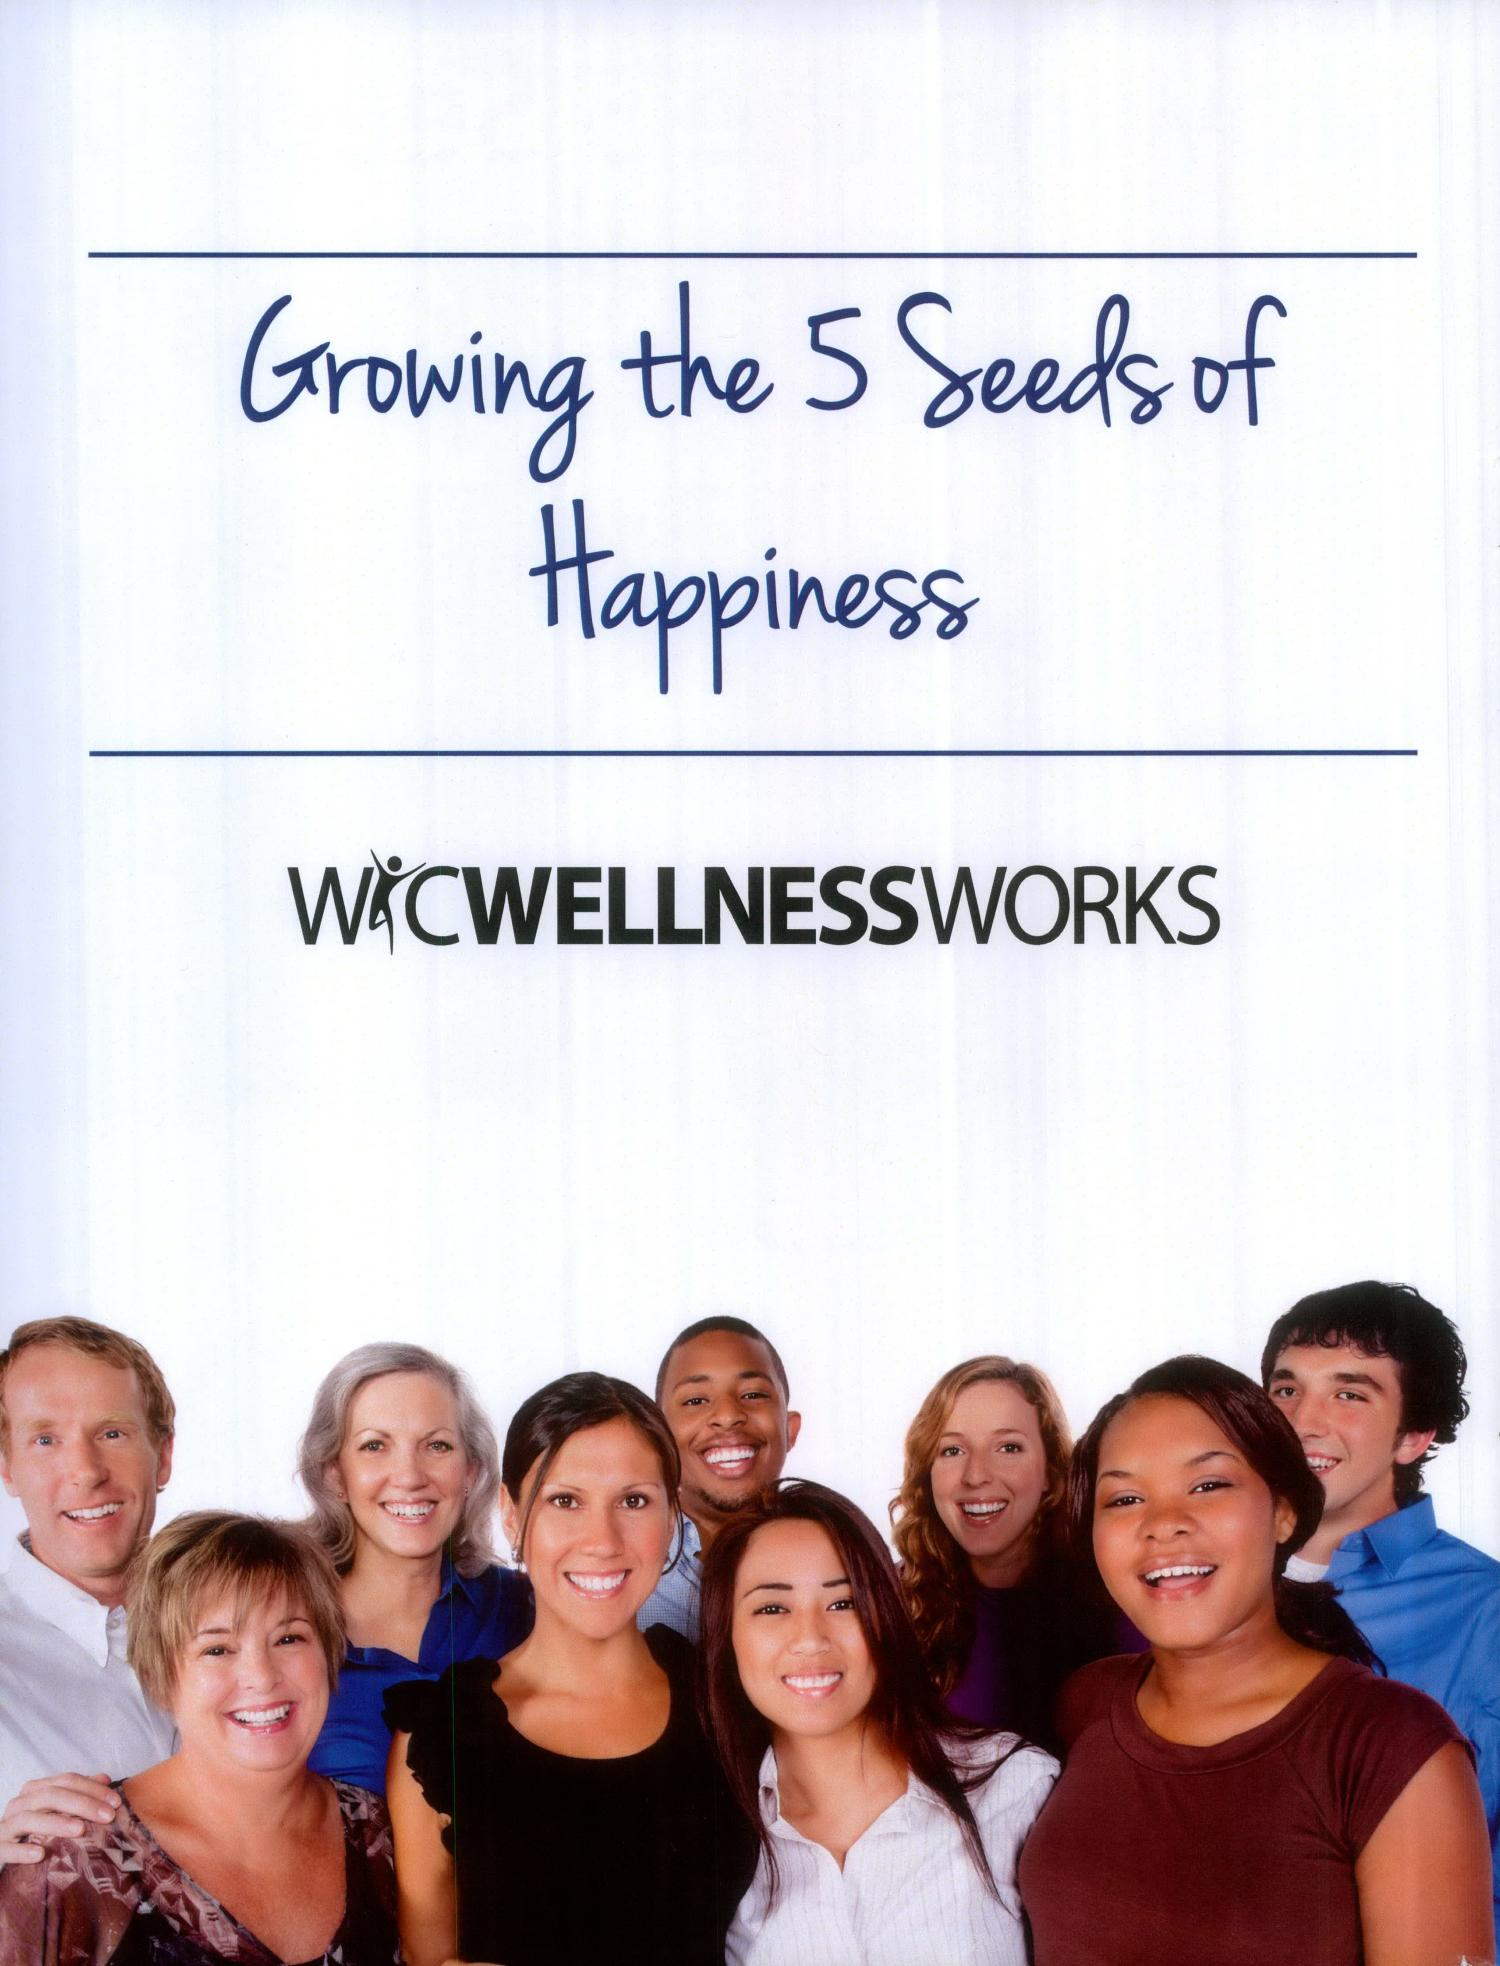 Growing the Five Seeds of Happiness Employee Packet                                                                                                      Wic Wellness Works